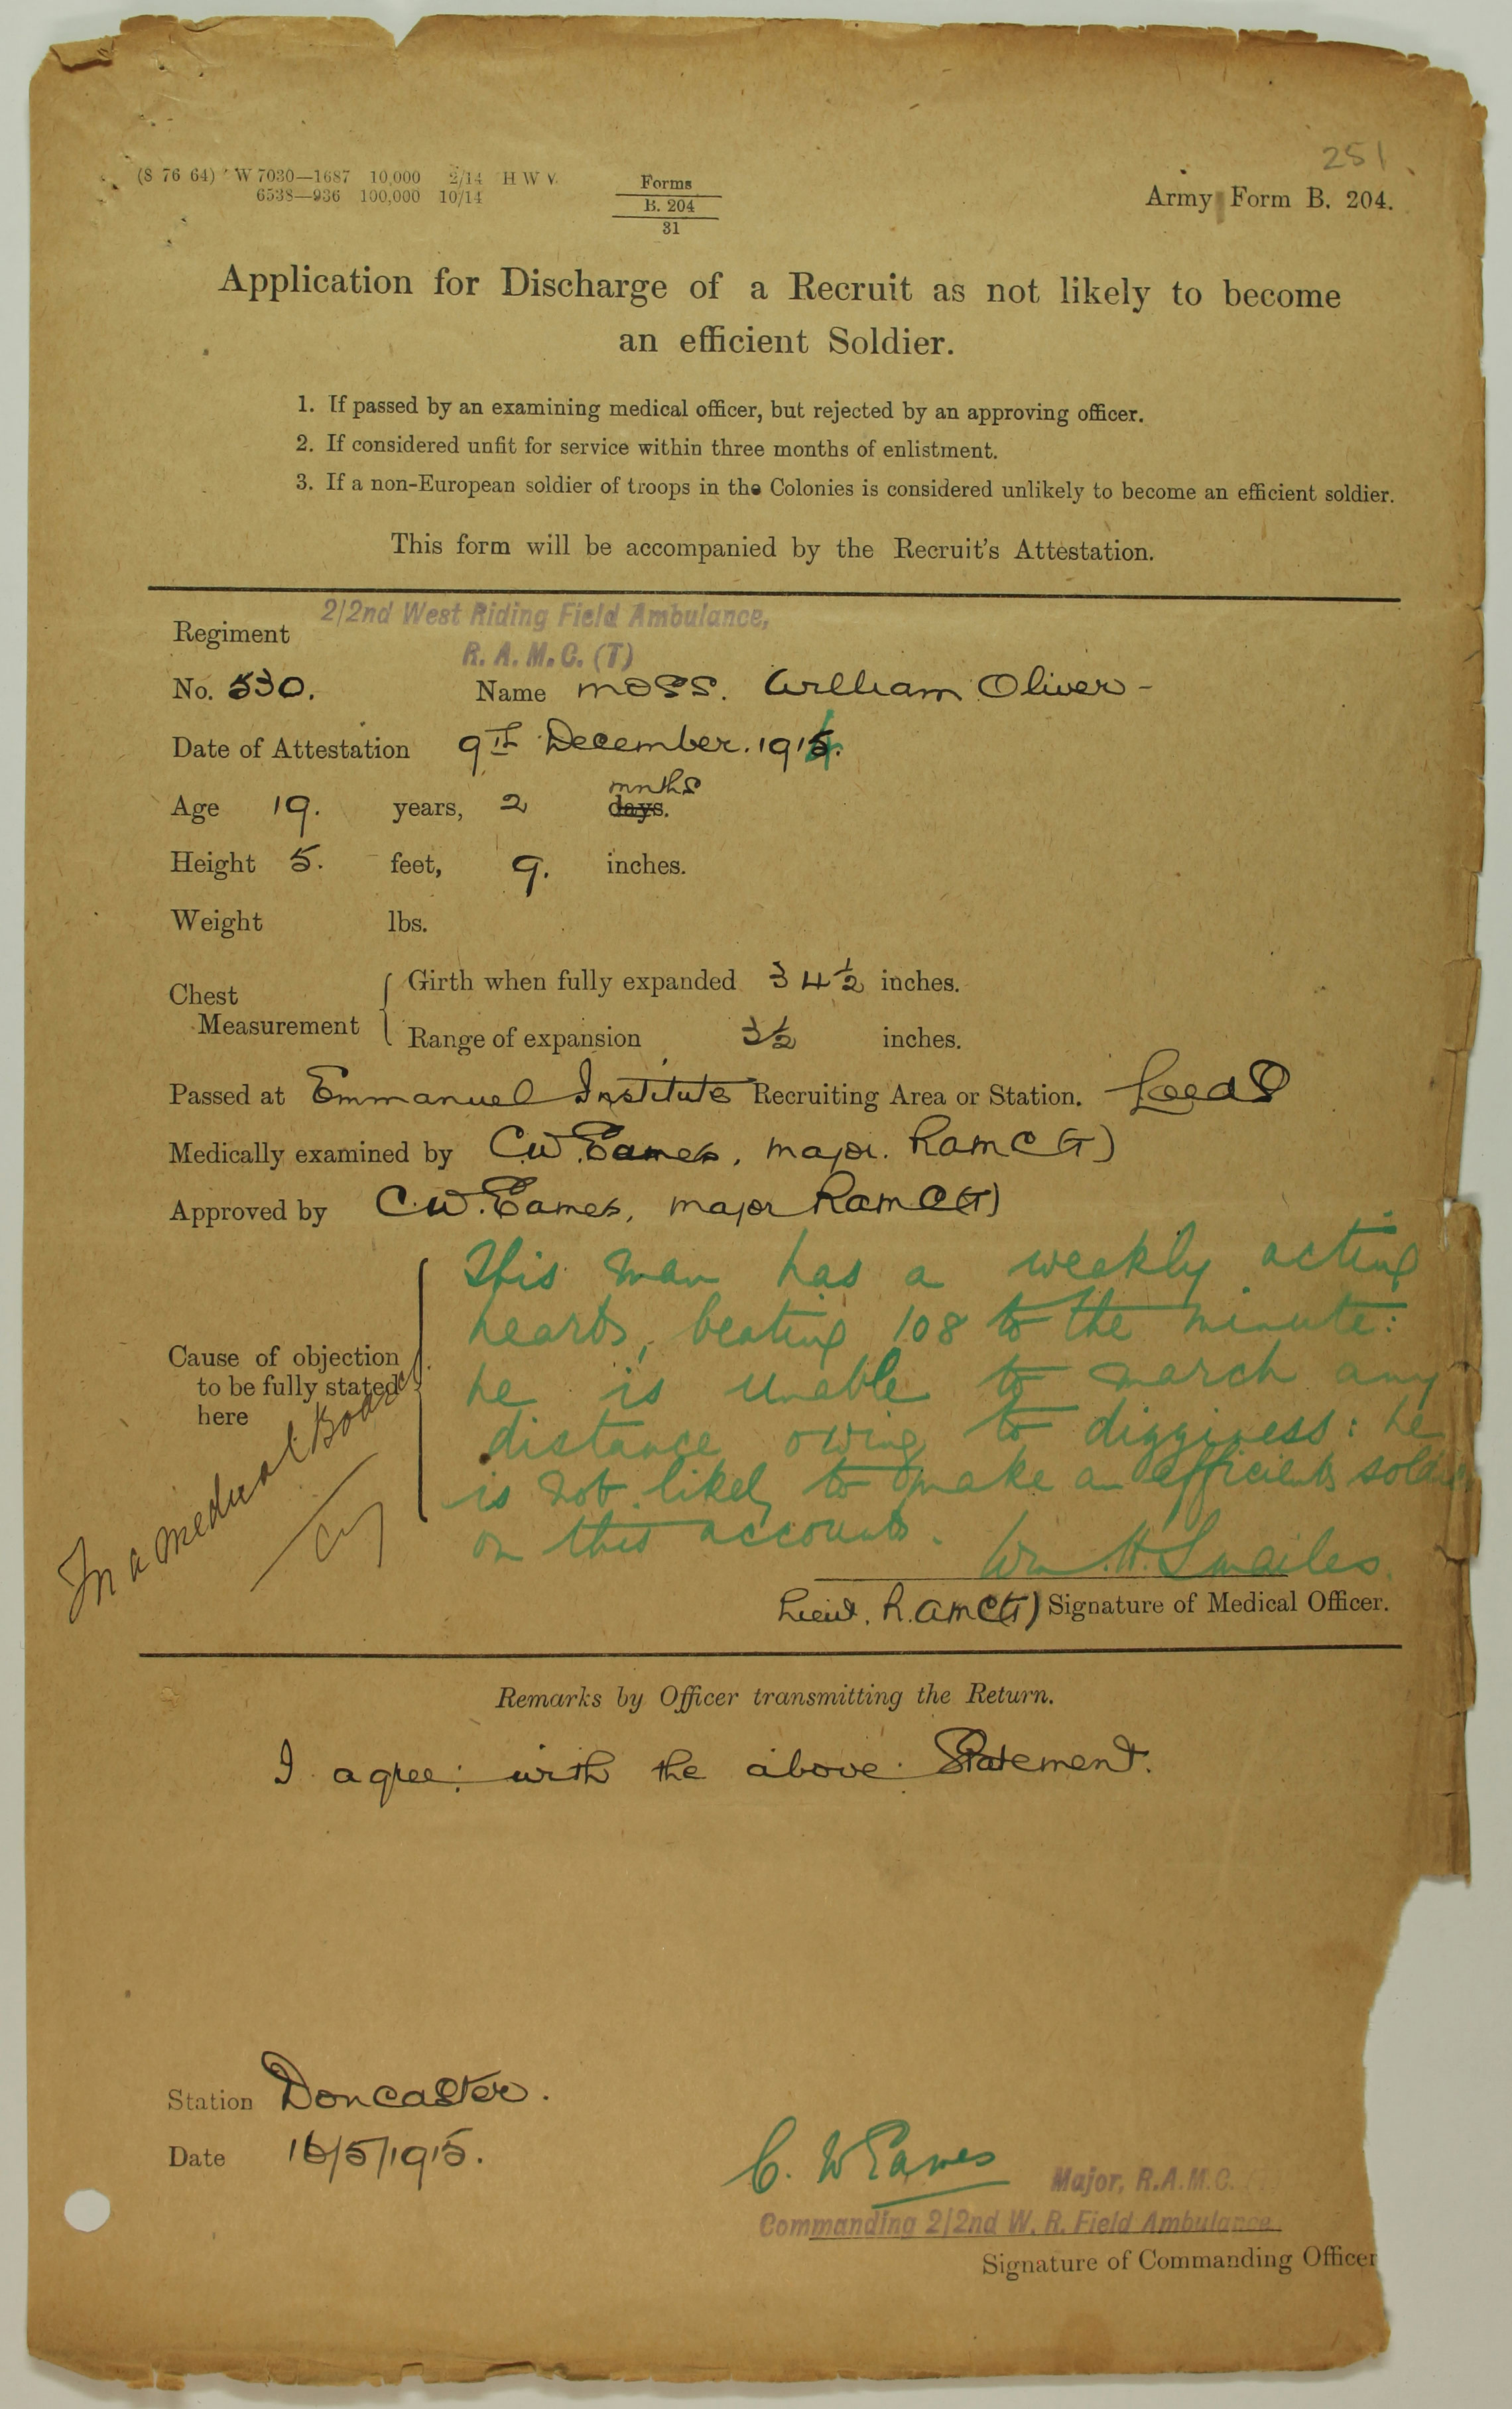 MH106/2101 Discharge of recruit form